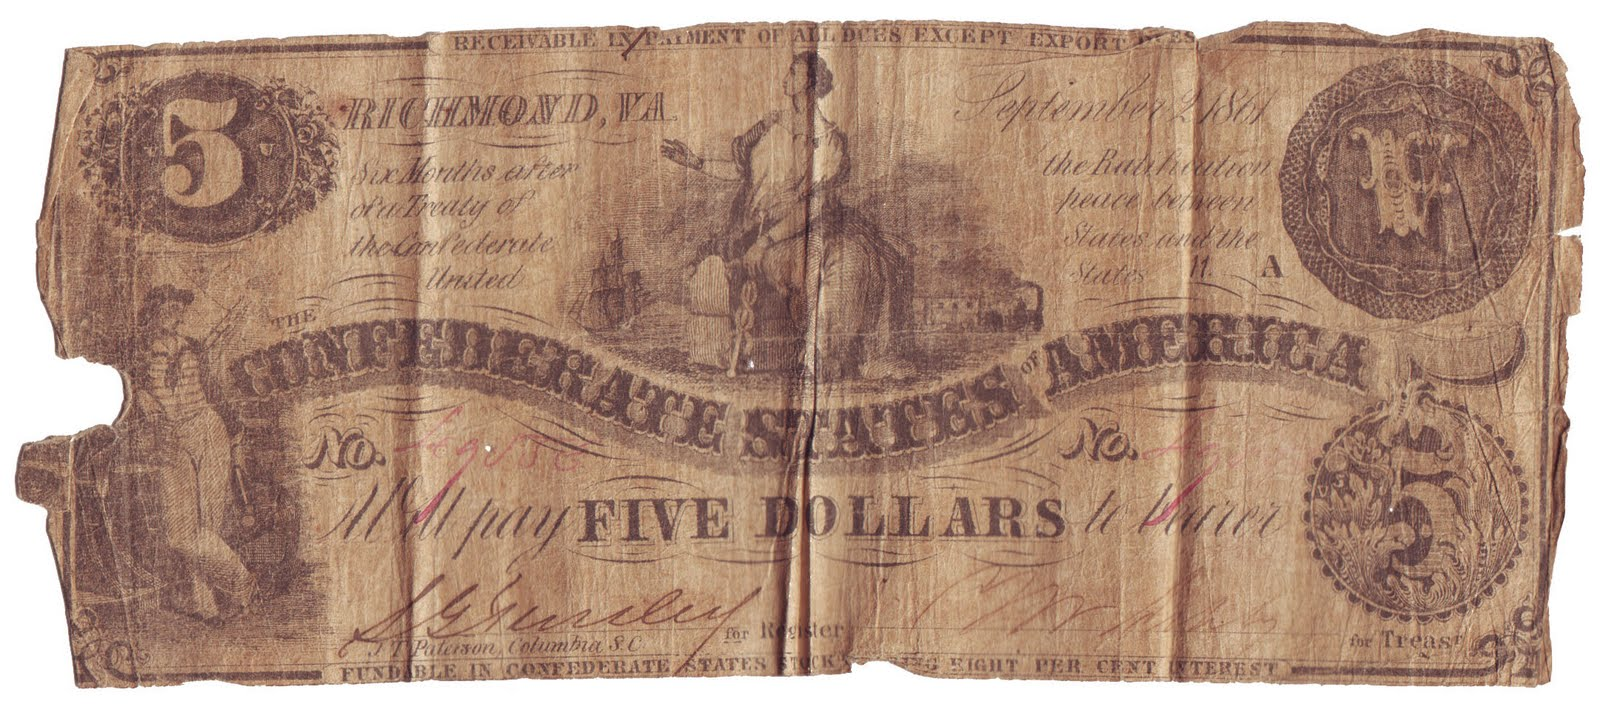 What Did Money Look Like in the Us in the 1800s